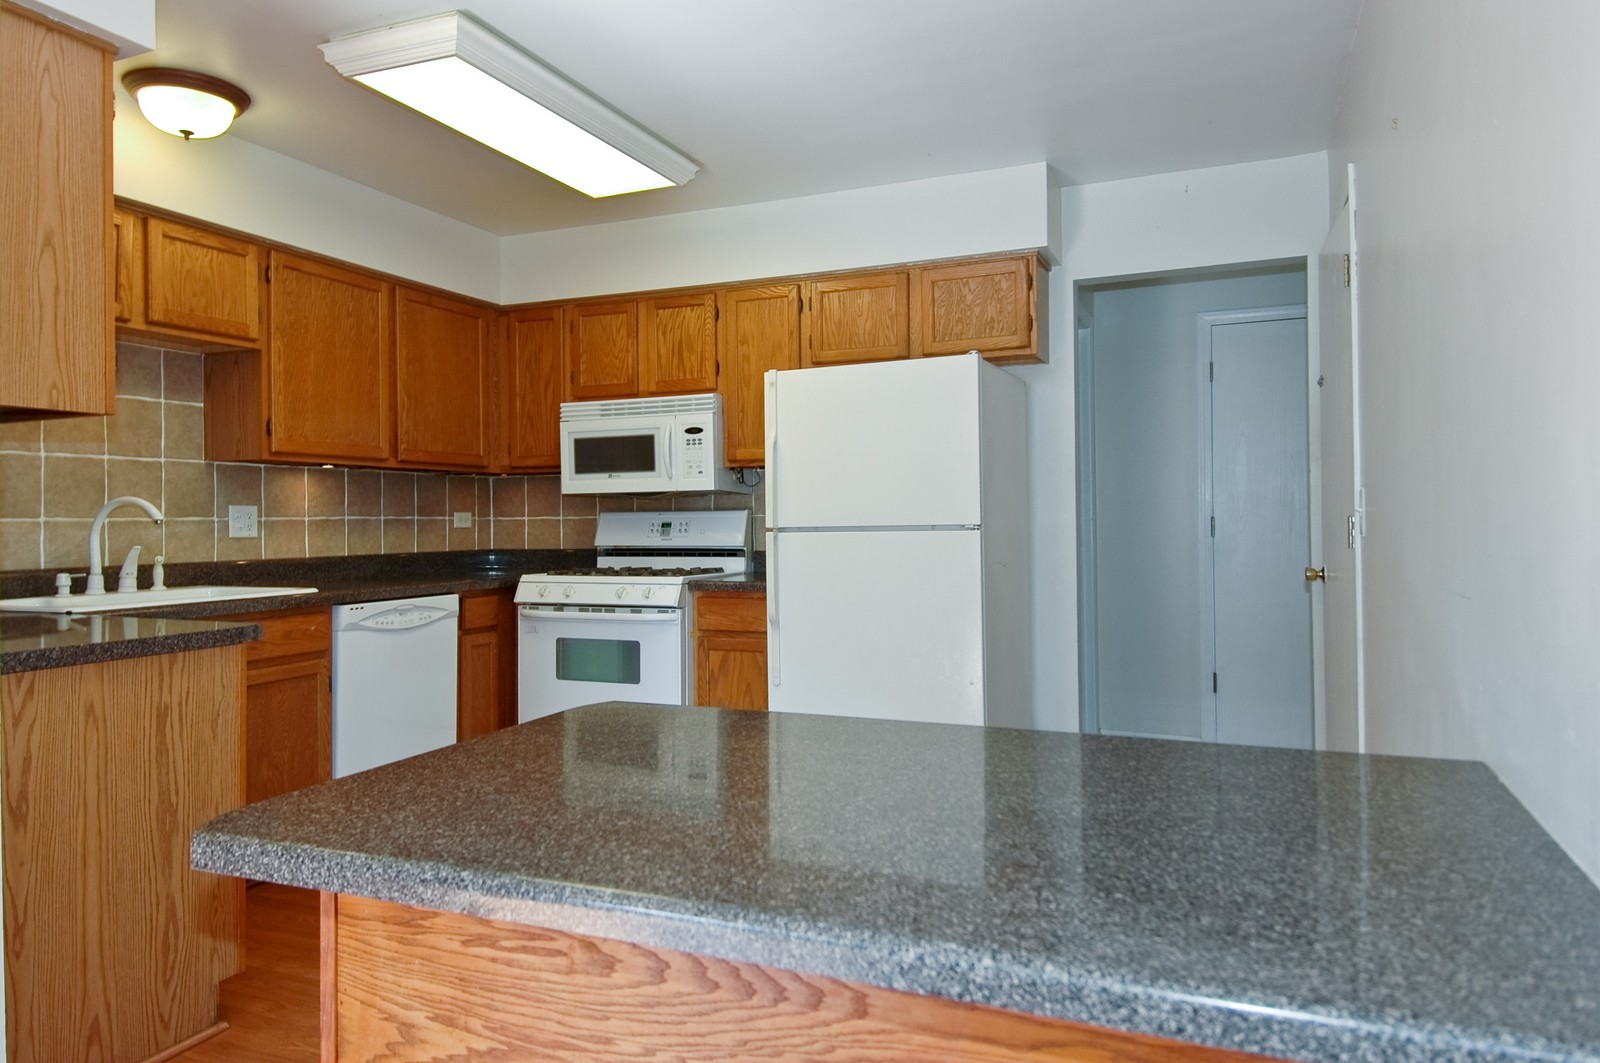 Real Estate Photography - 81 Kingsport, South Elgin, IL, 60177 - Kitchen